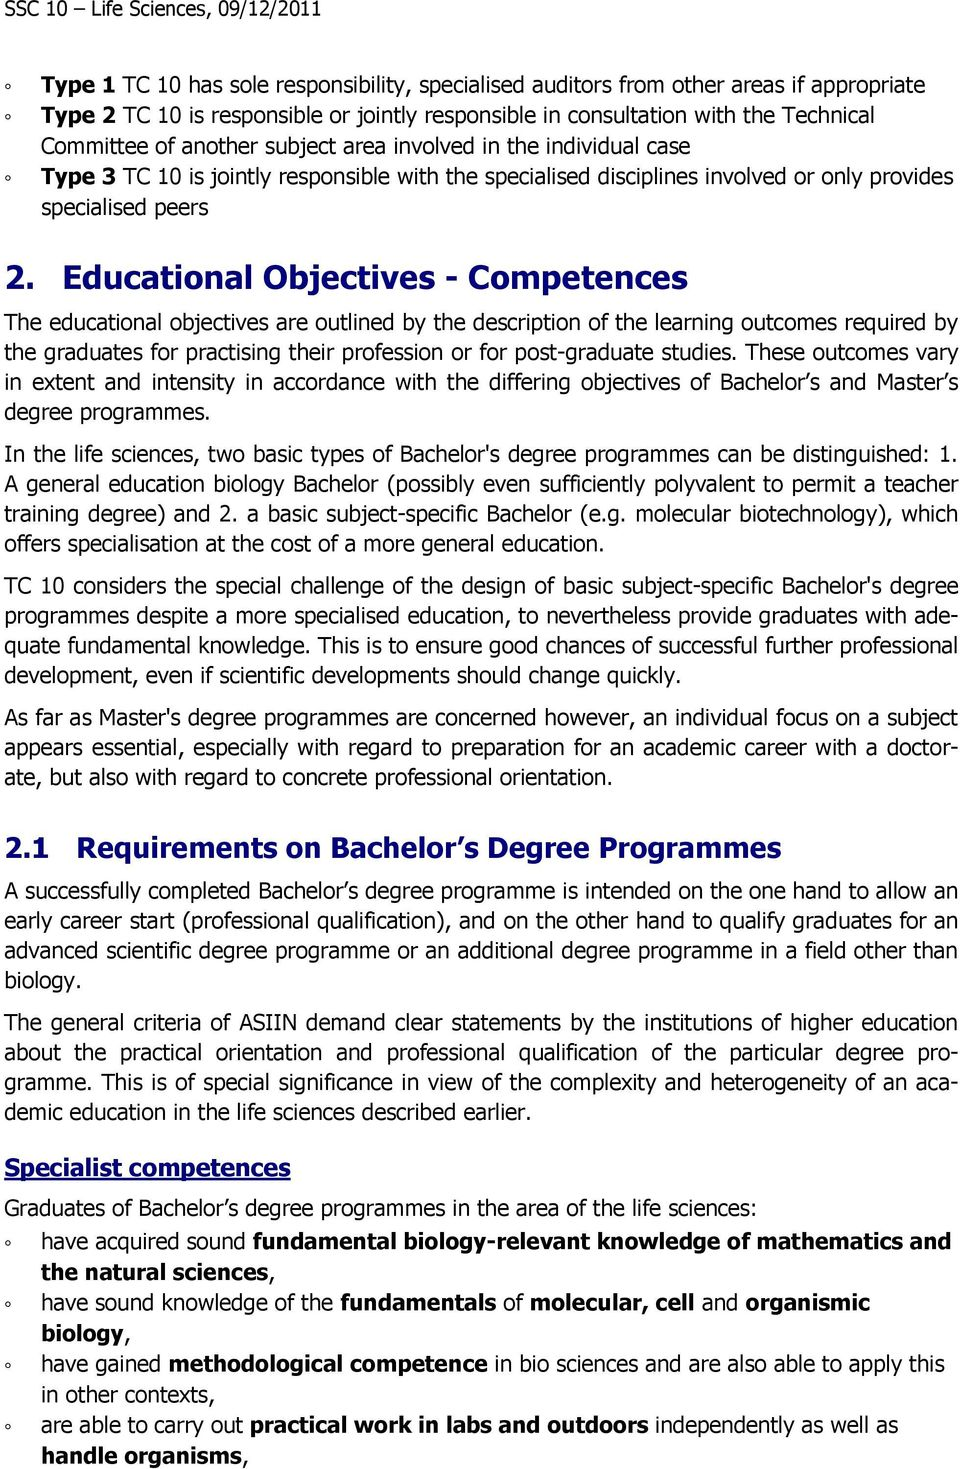 Educational Objectives - Competences The educational objectives are outlined by the description of the learning outcomes required by the graduates for practising their profession or for post-graduate